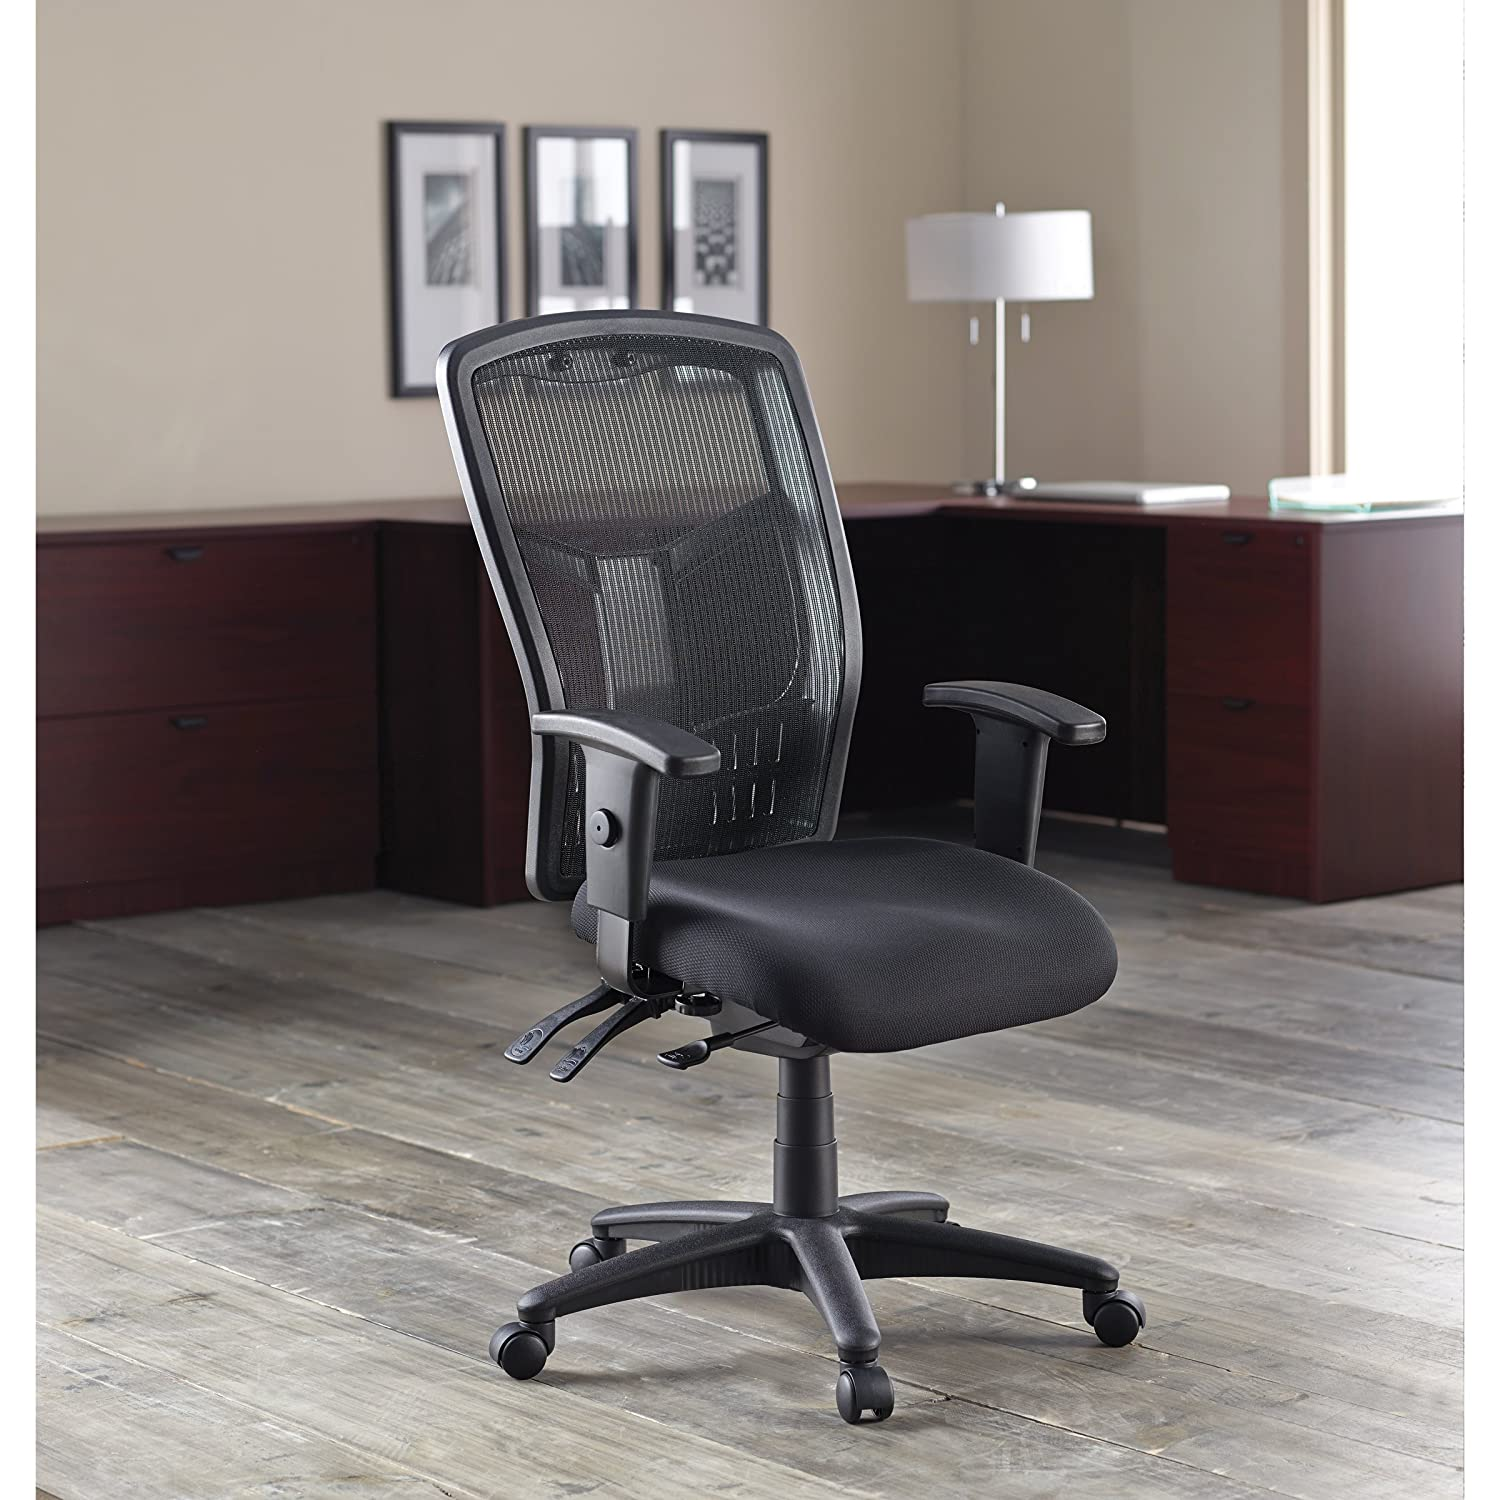 Best Comfy Office Chair Top Comfortable Mesh Office Chair Mesh Office Chair Reviews